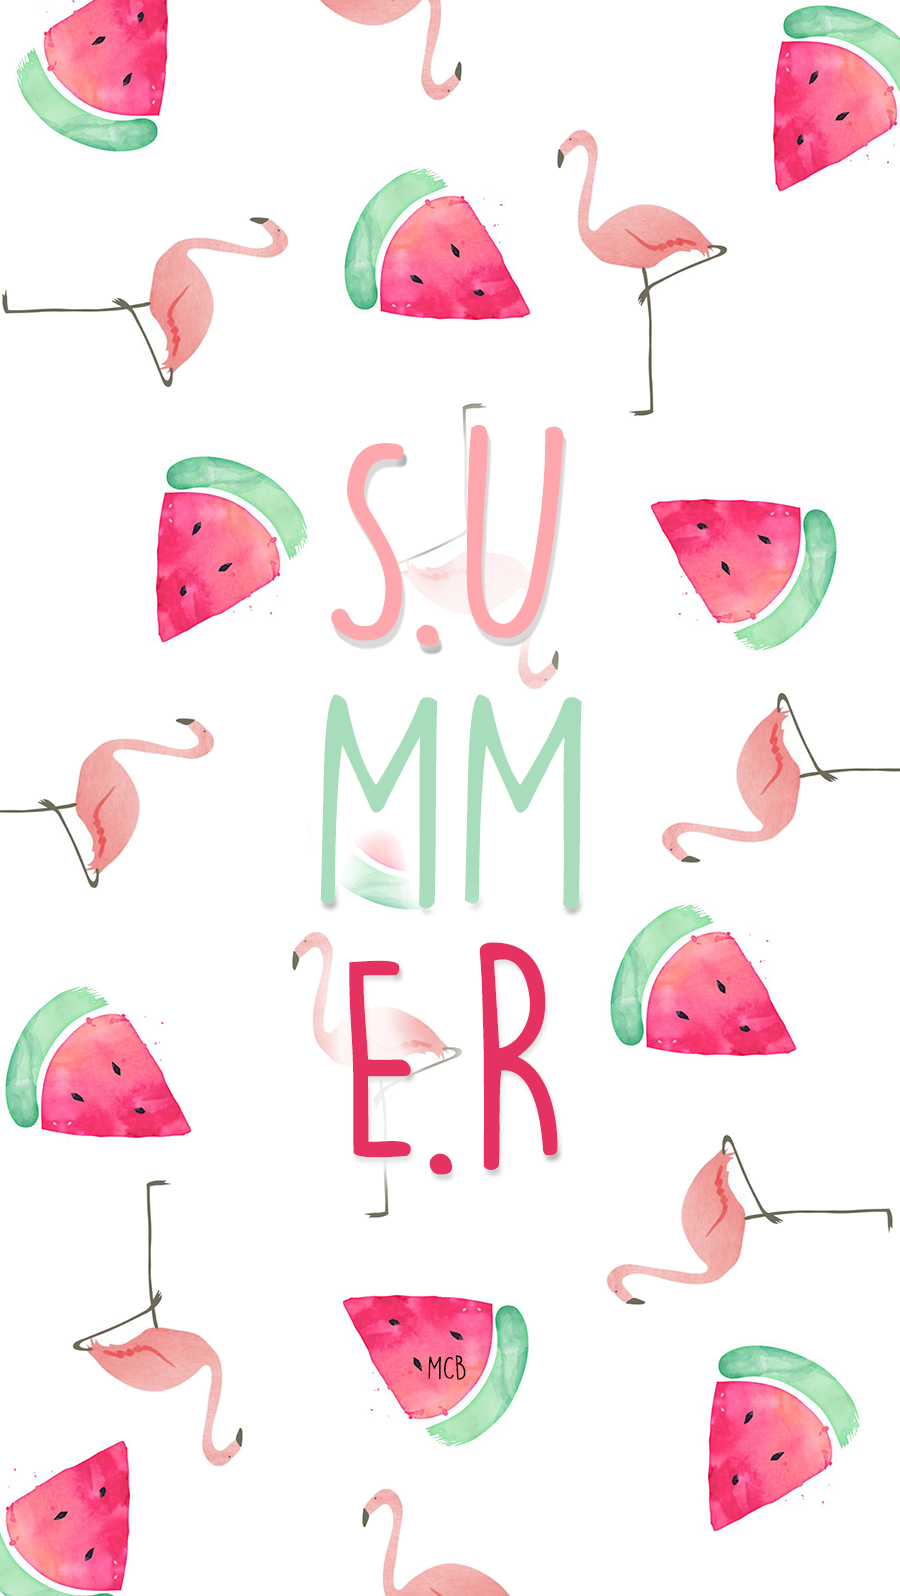 900x1596 - Watermelon Wallpapers 12